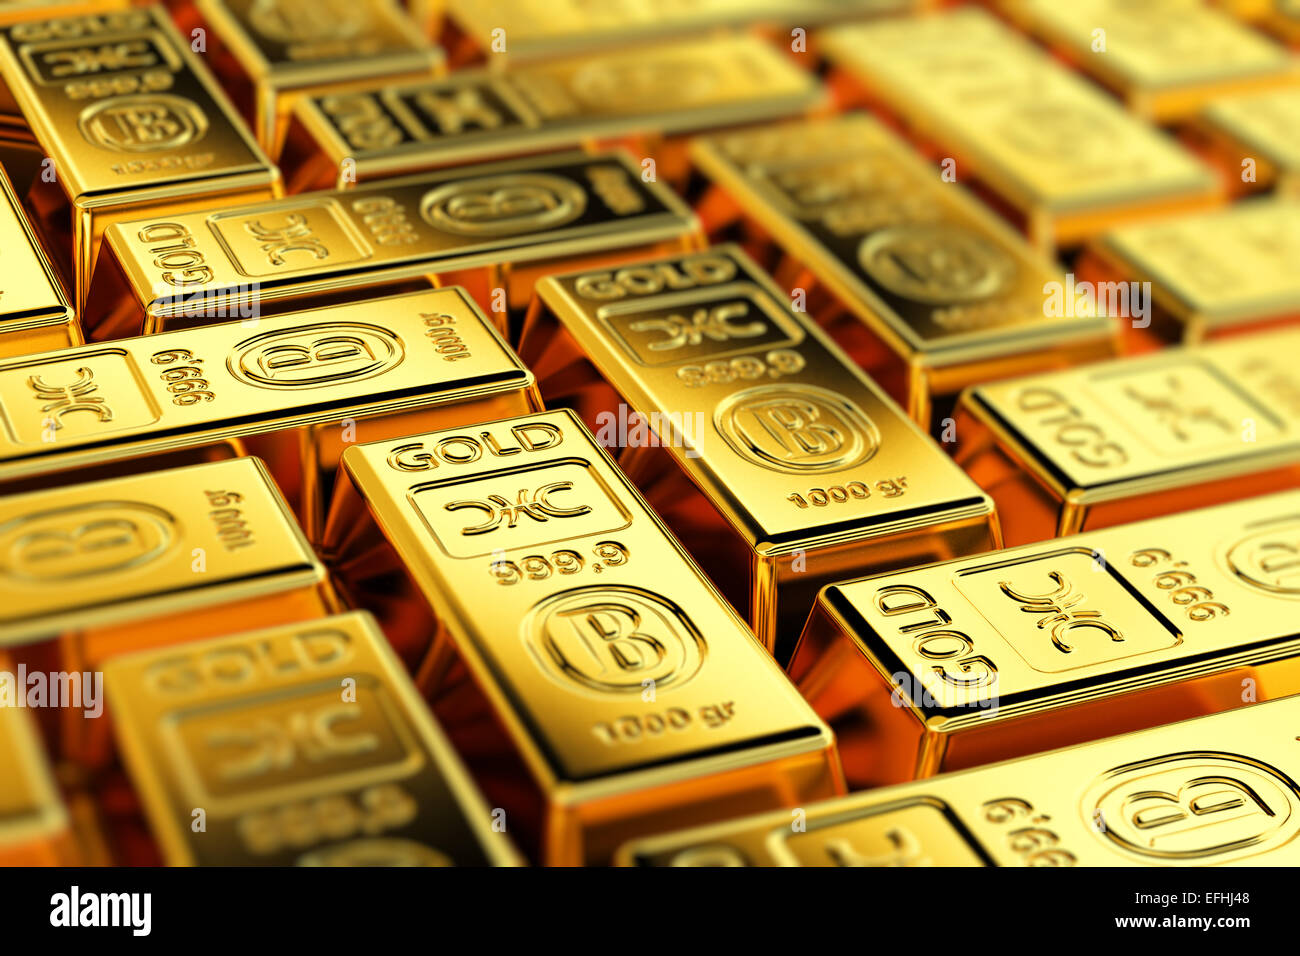 Goldbarren Stockbild